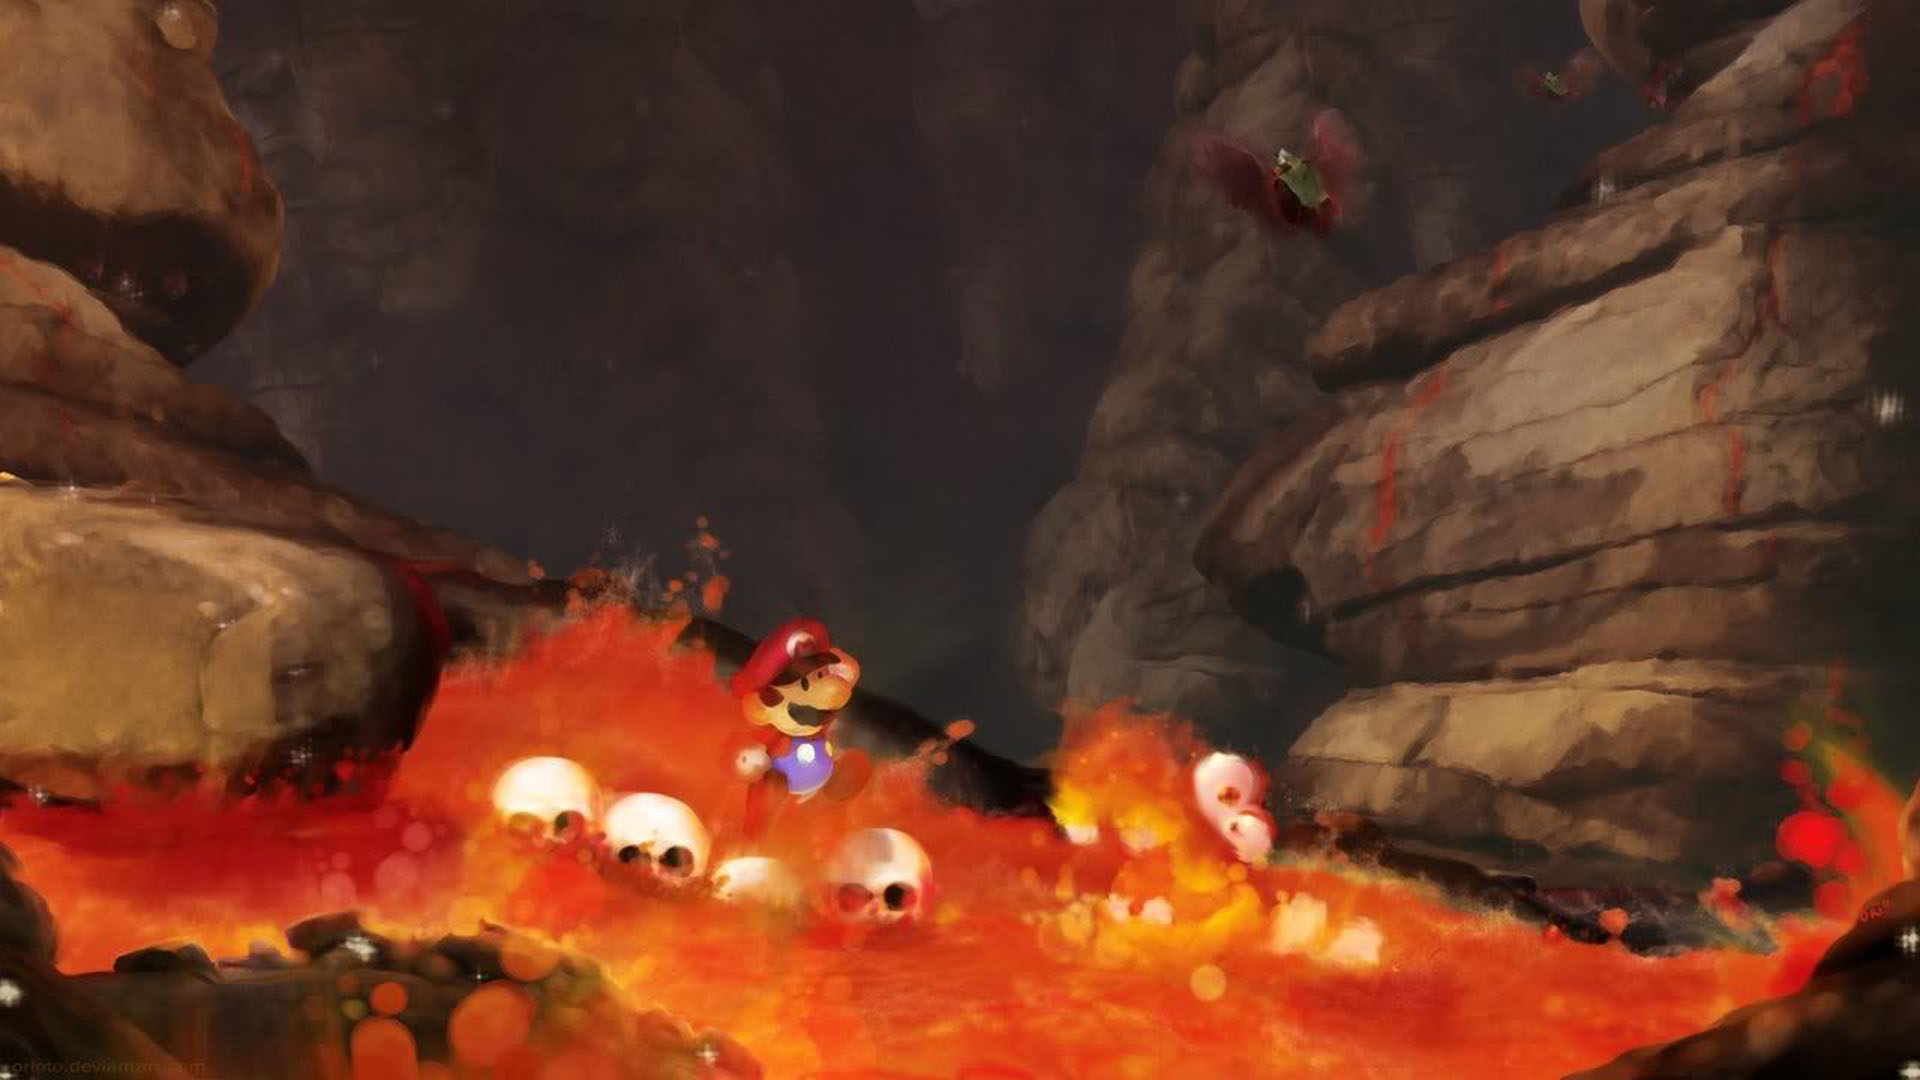 Baby Mario In The Flames